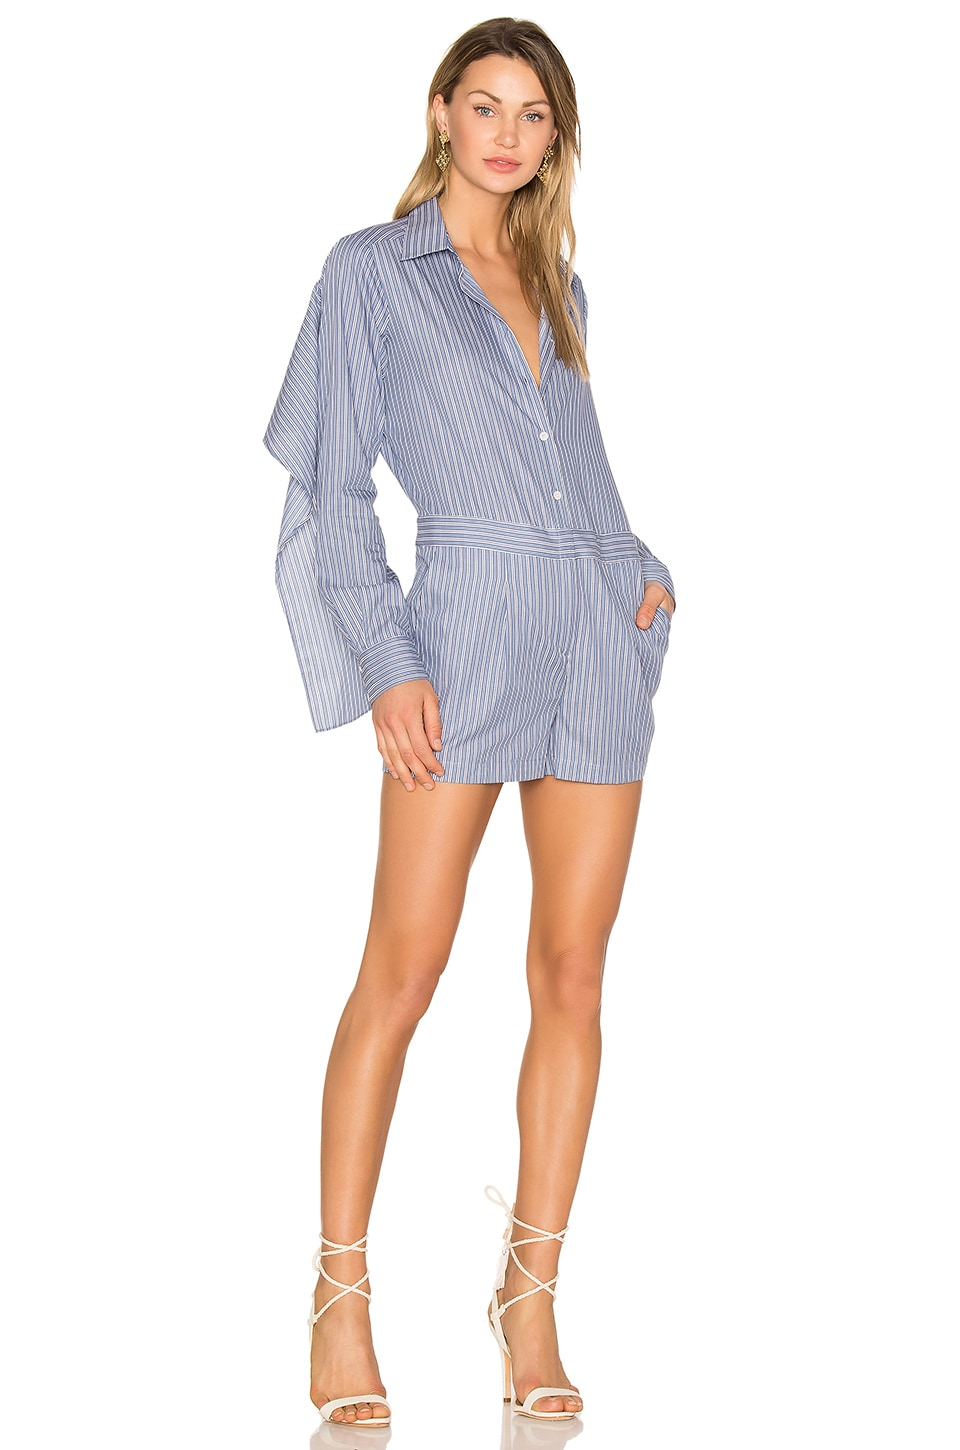 Collared Romper by Bcbgmaxazria